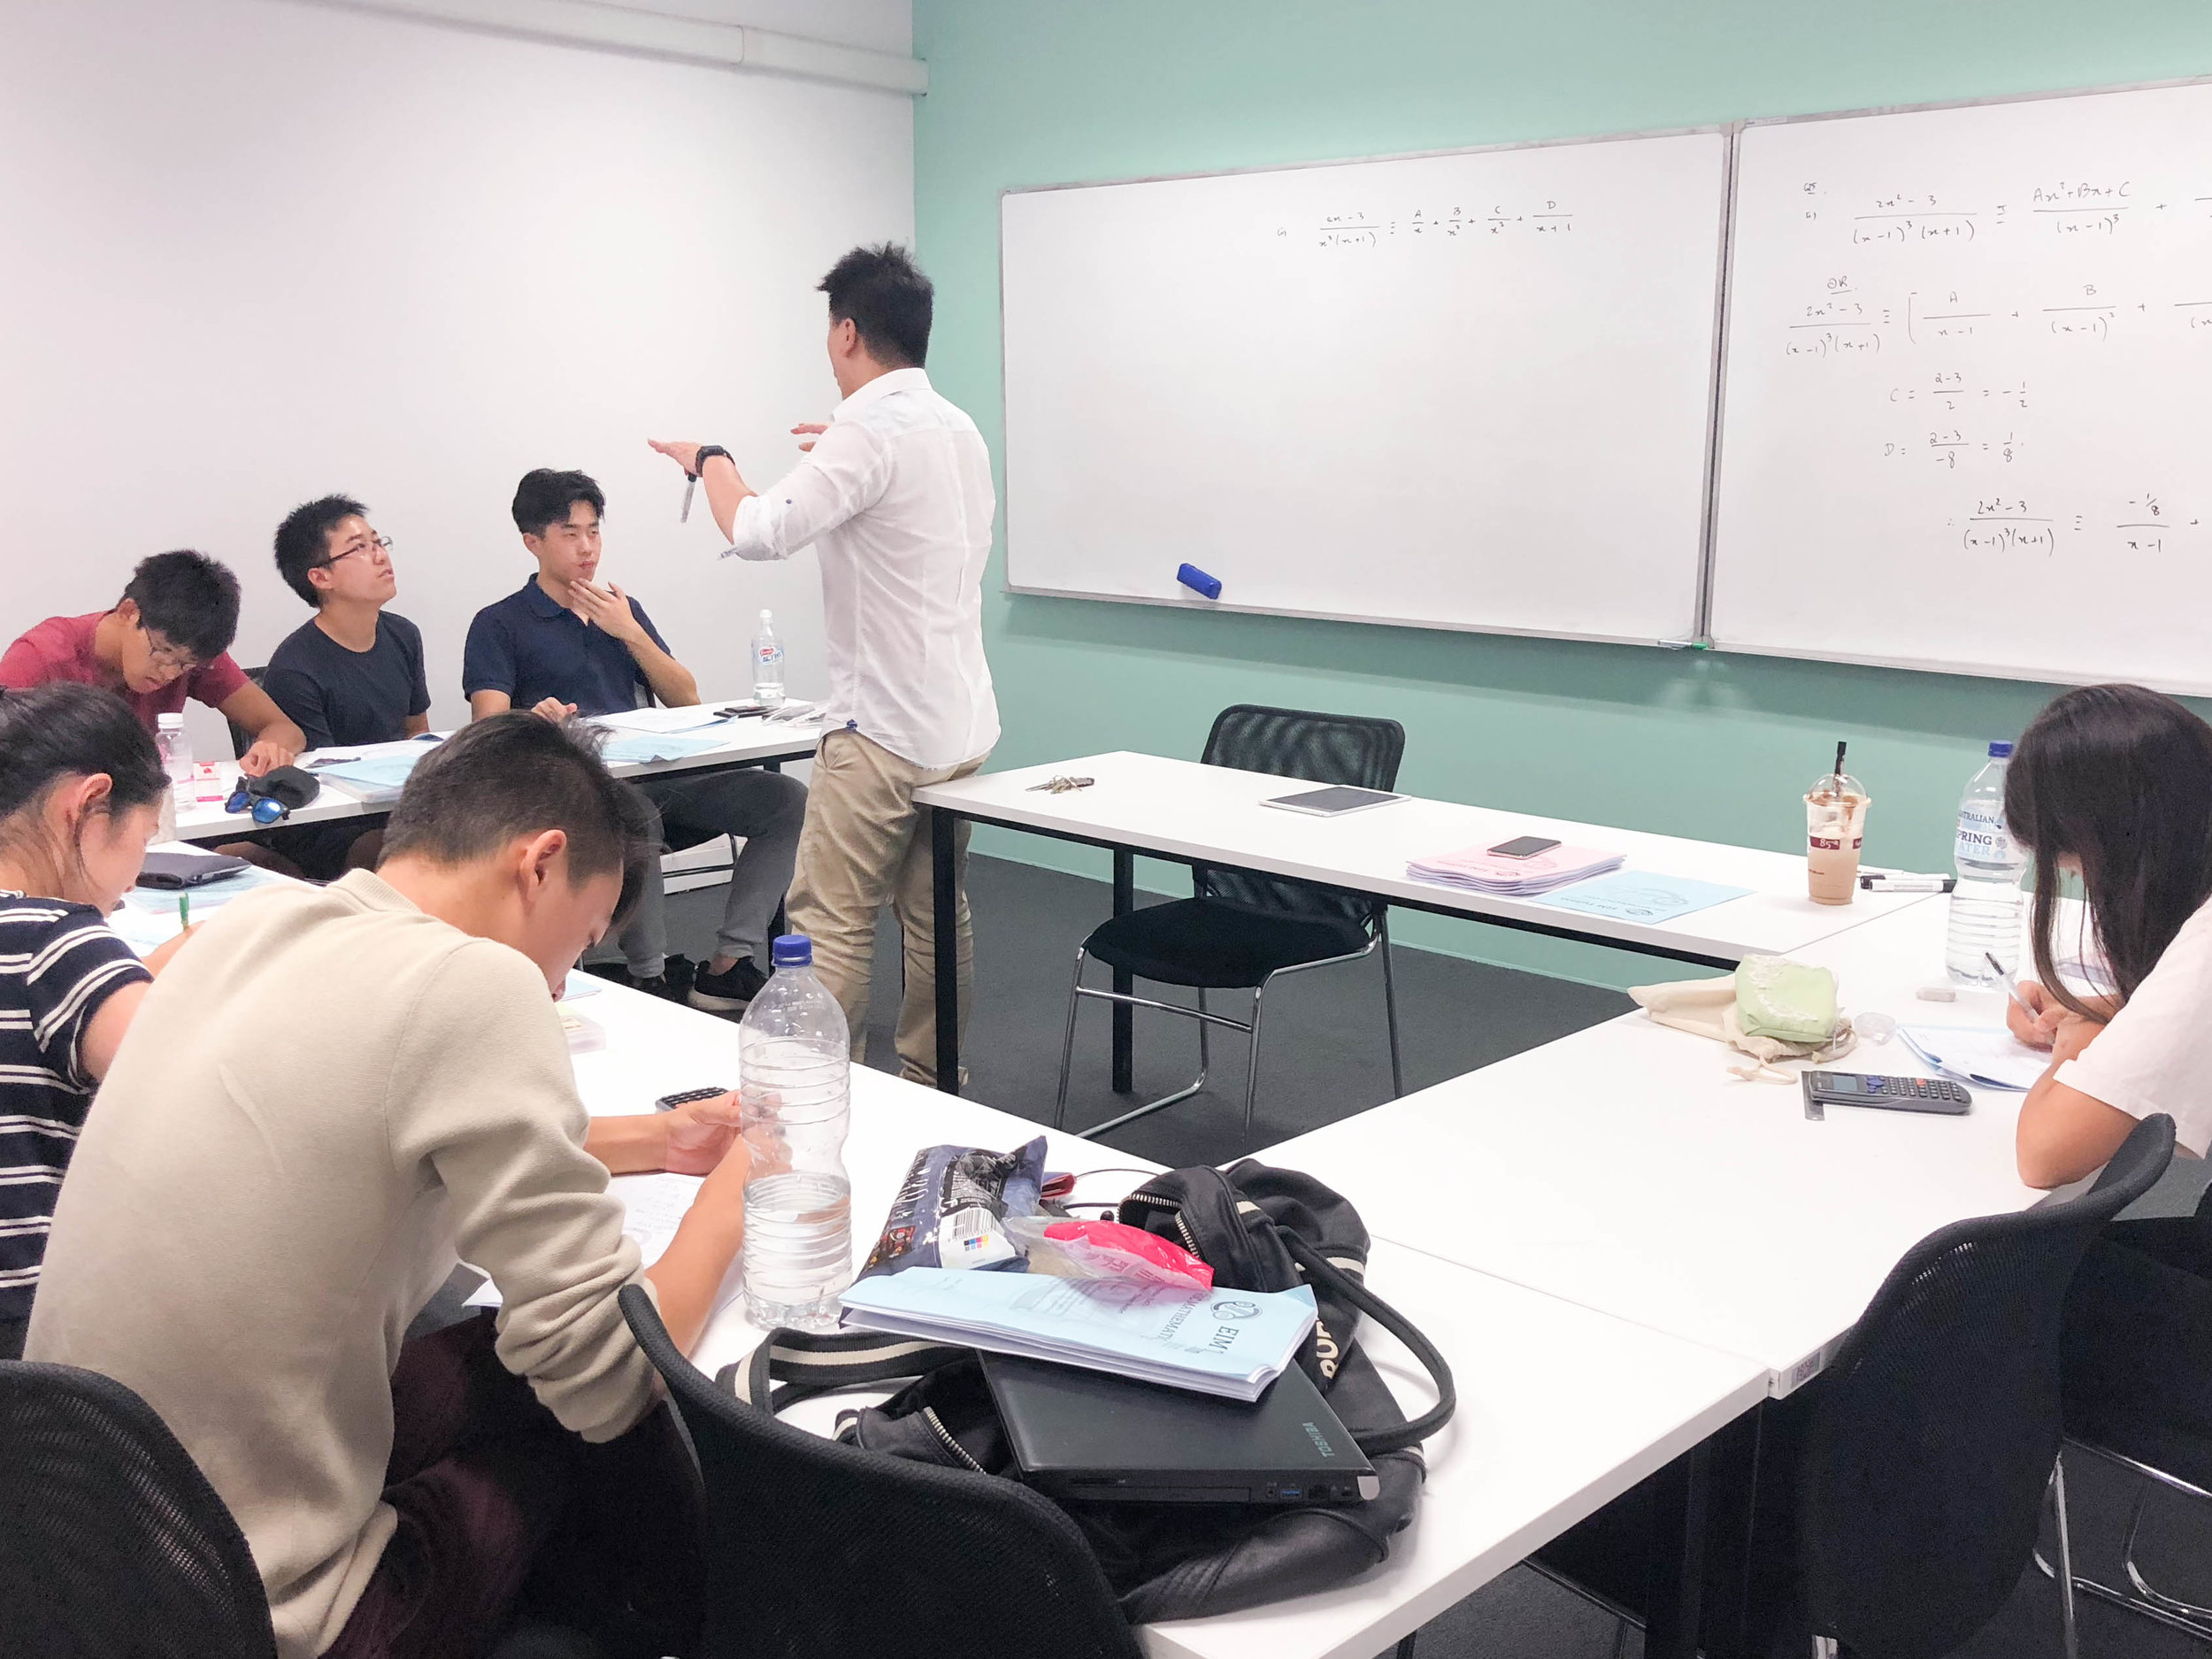 HIGH-ENERGY TEACHING - Based on the age-old Socratic style of teaching, our staff have been trained to engage at a deep level, through direct interaction and participation. You will never find EIM tutors simply lecturing, or talking